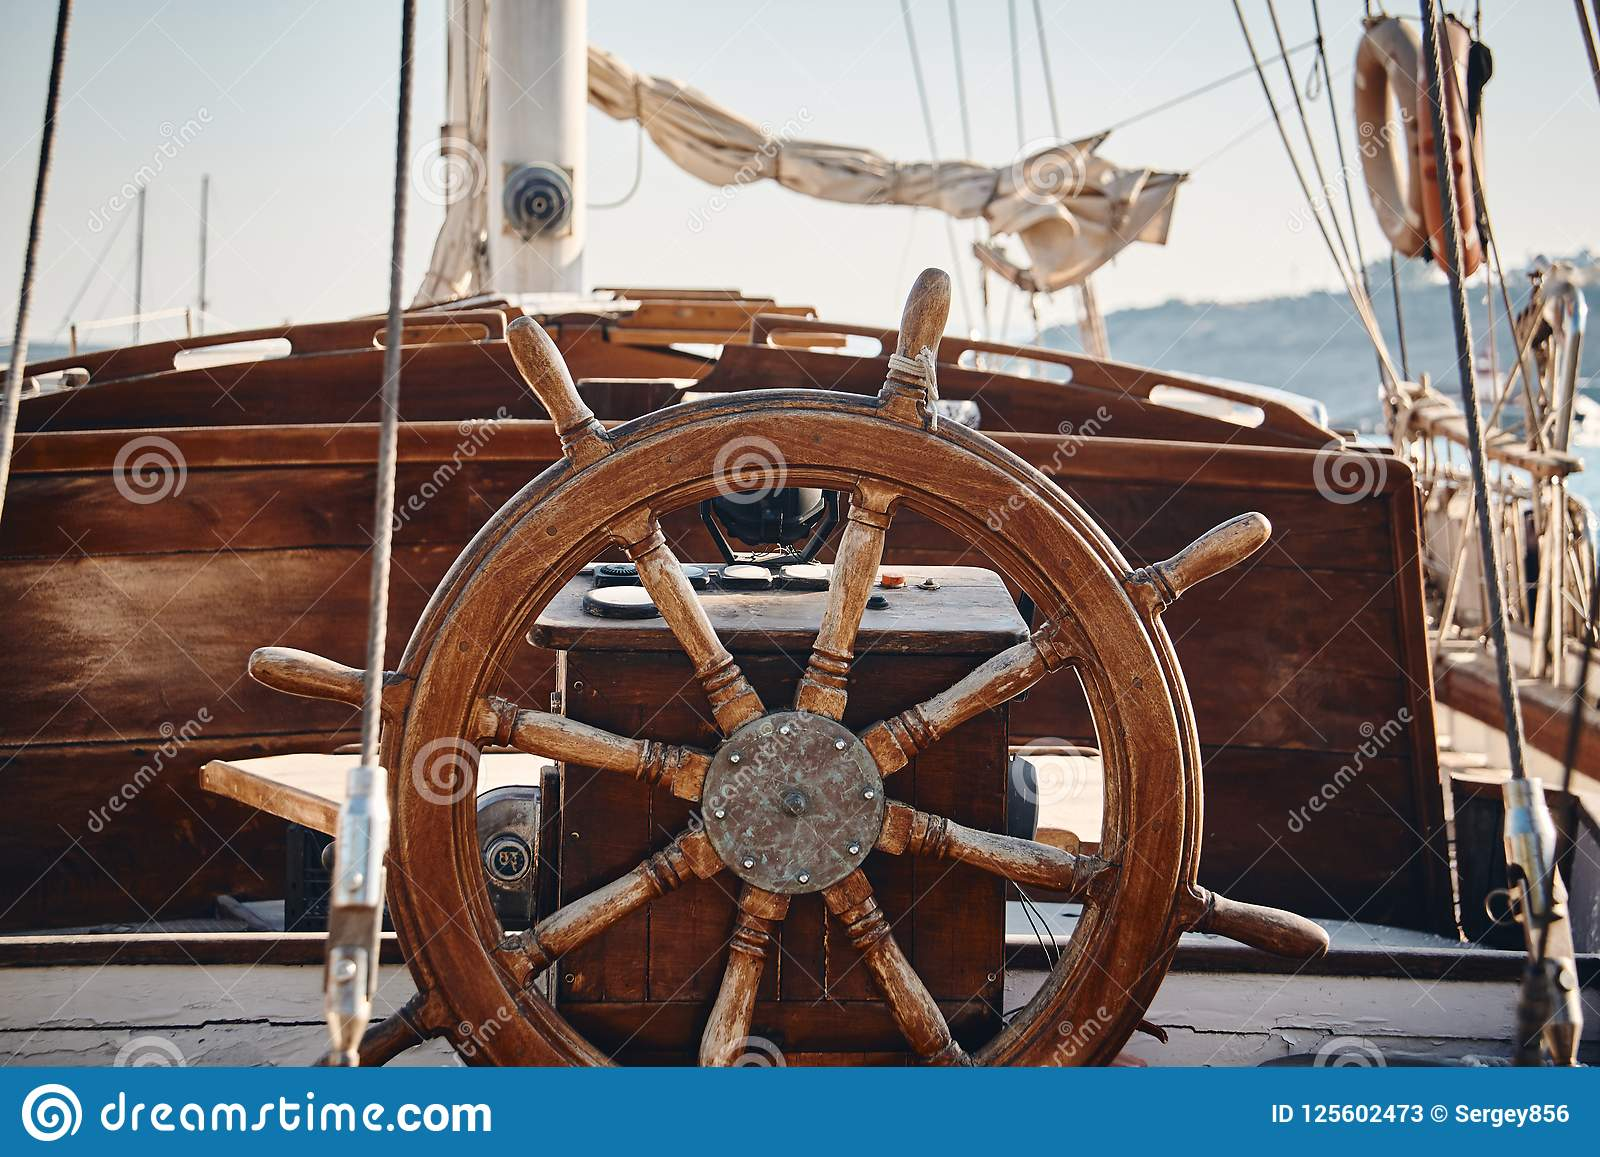 Closeup Of A Vintage Hand Wheel On A Wooden Sailing Yacht Stock